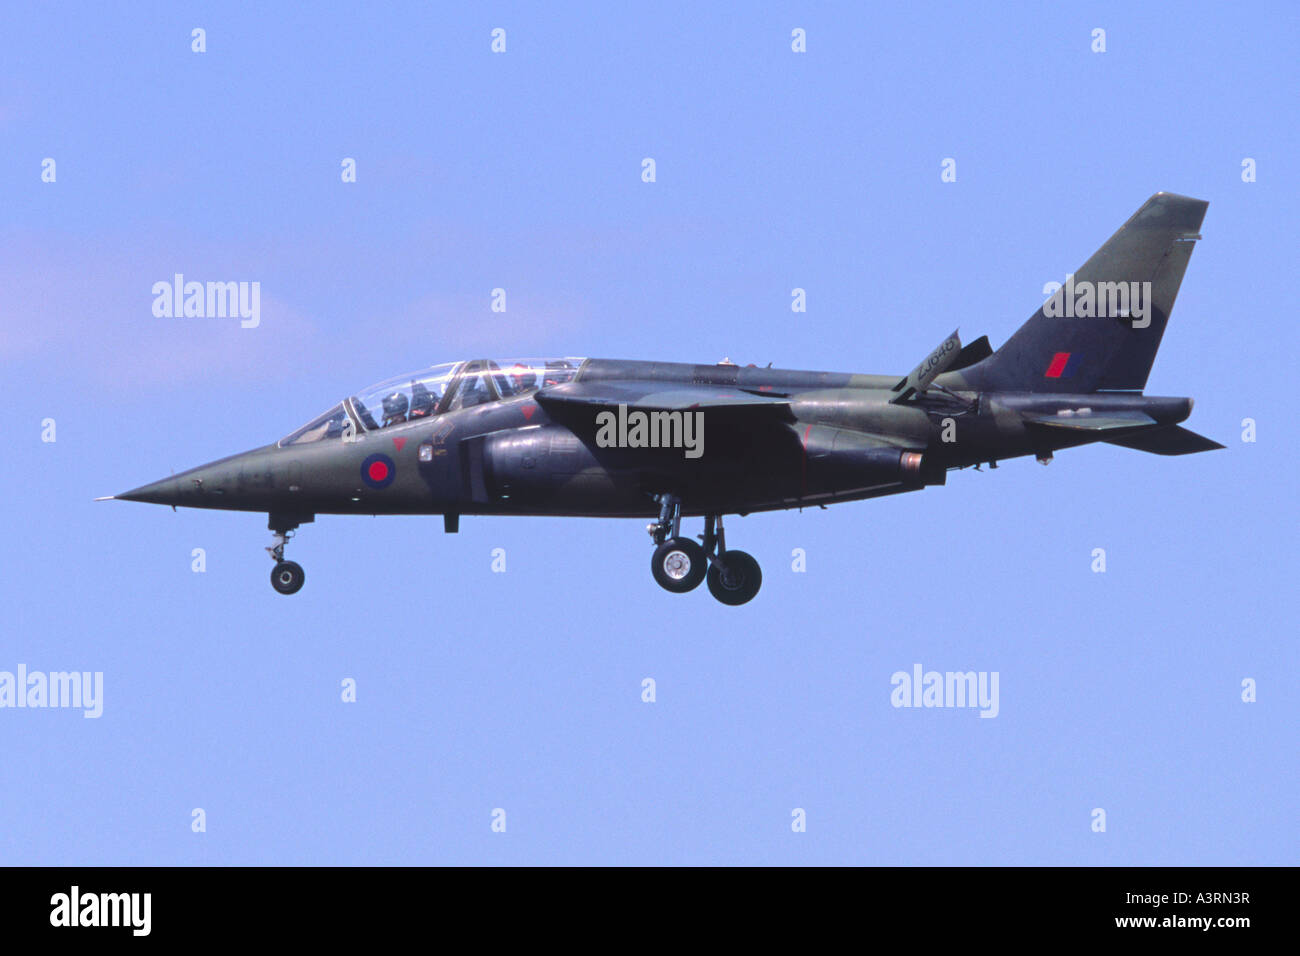 Alpha Jet aircraft in RAF markings operated by QinetiQ Boscombe Down - Stock Image